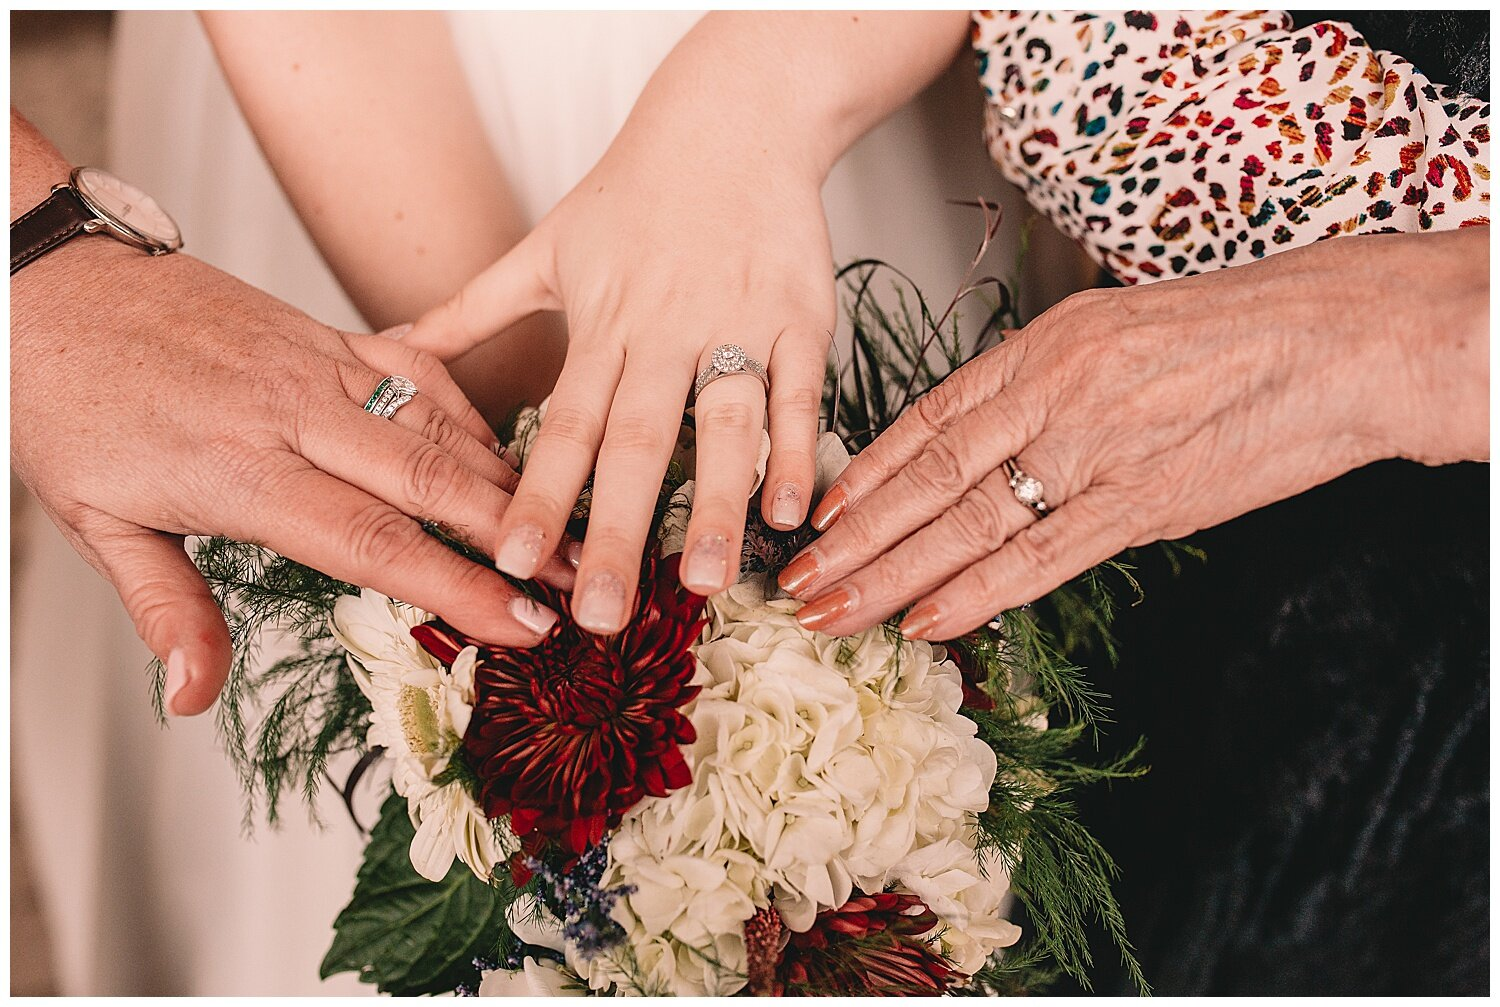 These are the wedding rings of the bride, her mom and her grandma. Such a sweet keepsake this photo will be!